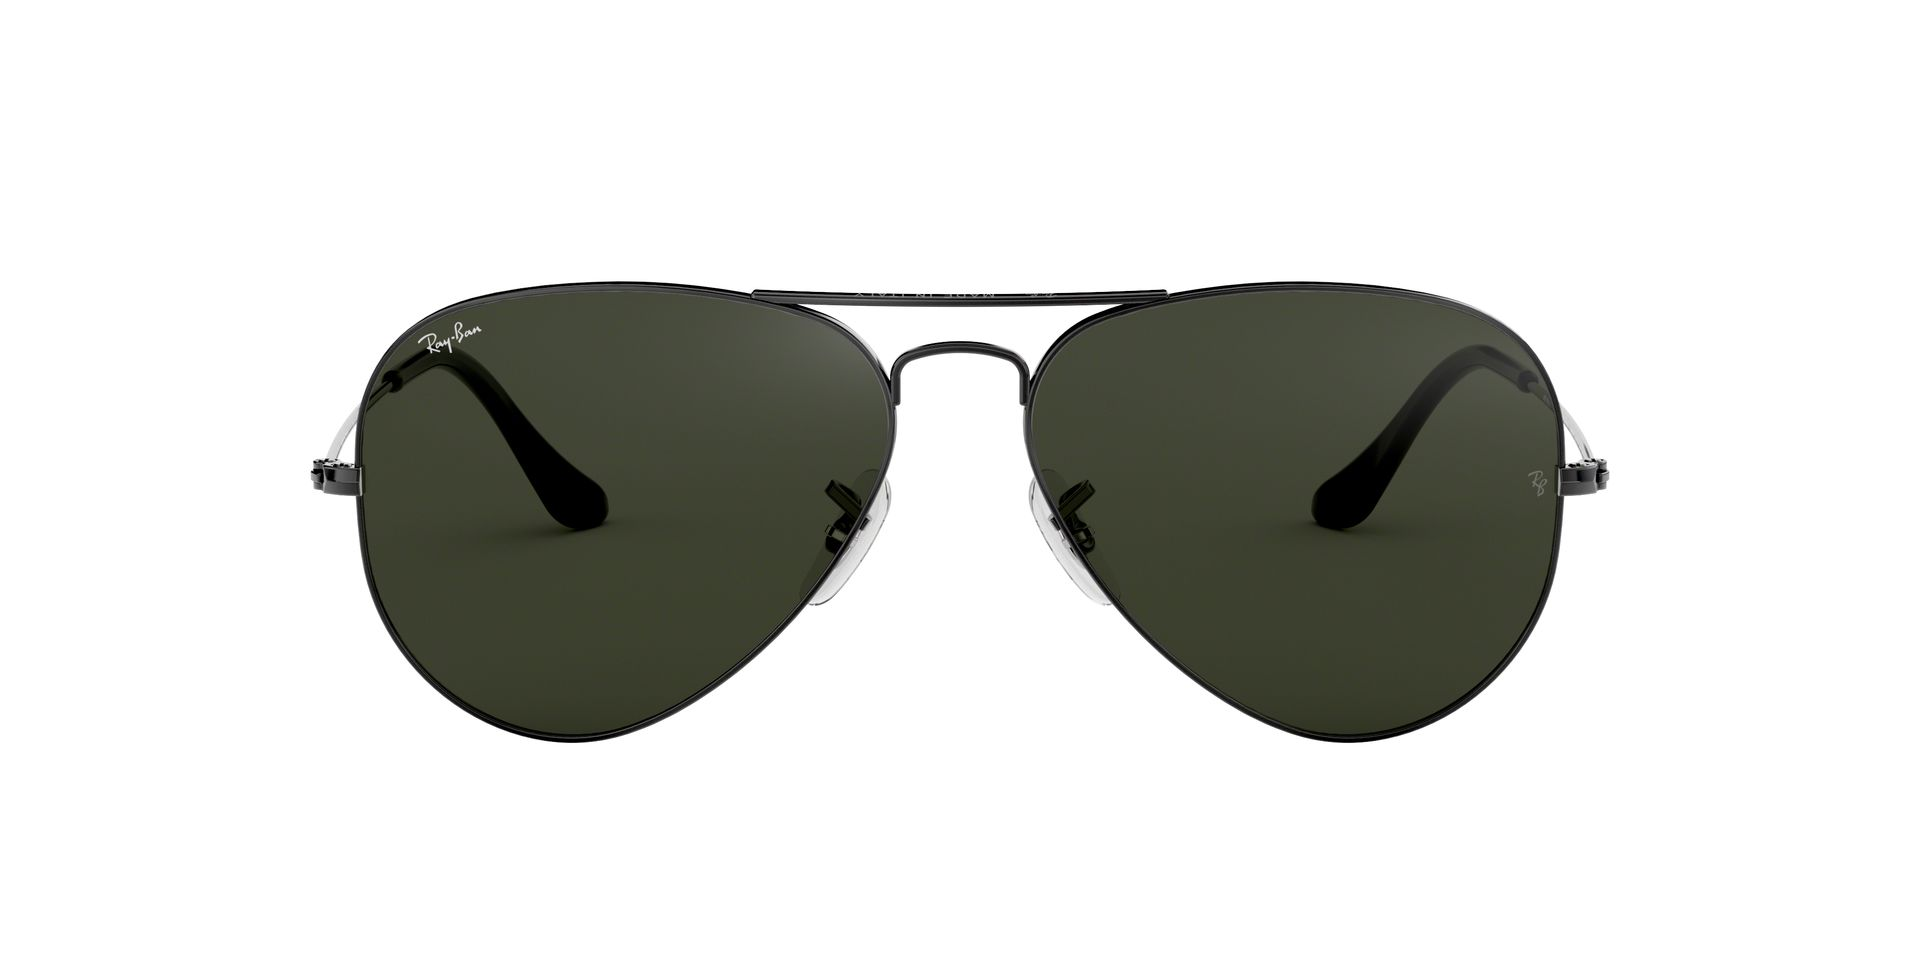 RAY-BAN AVIATOR RB 3025 W0879 58mm.-360